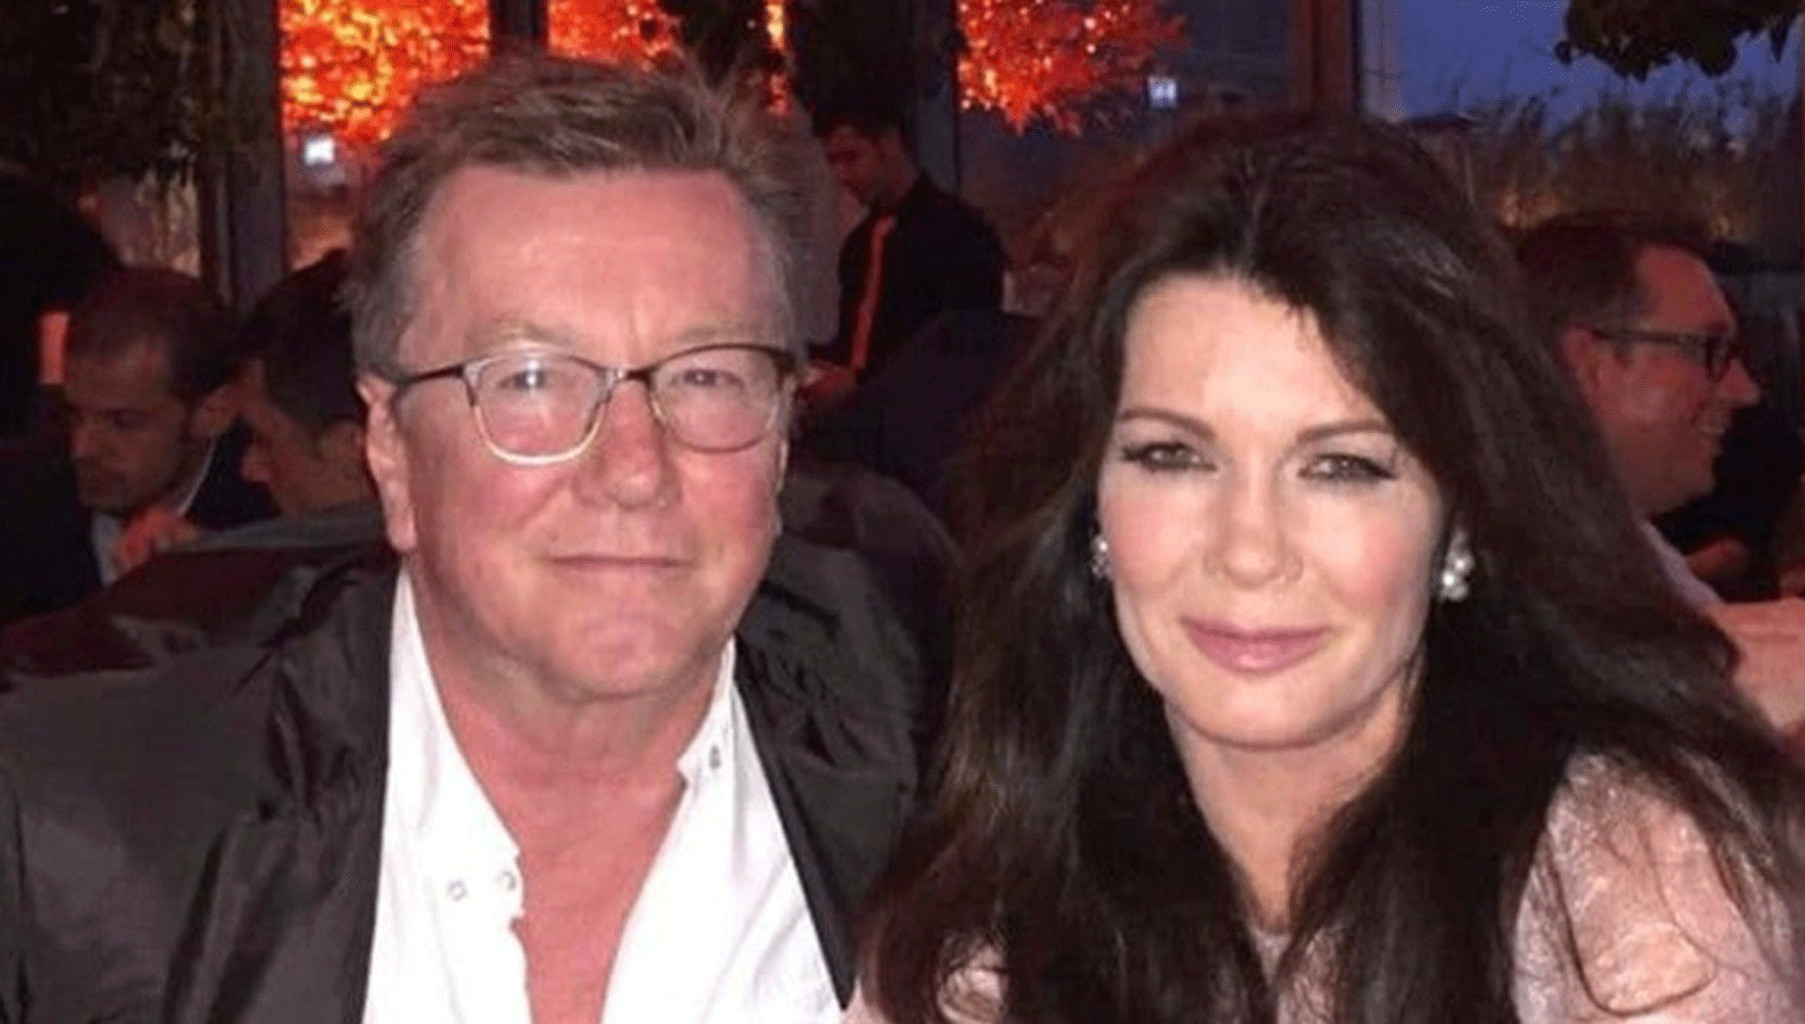 Lisa Vanderpump, Mark Vanderpump